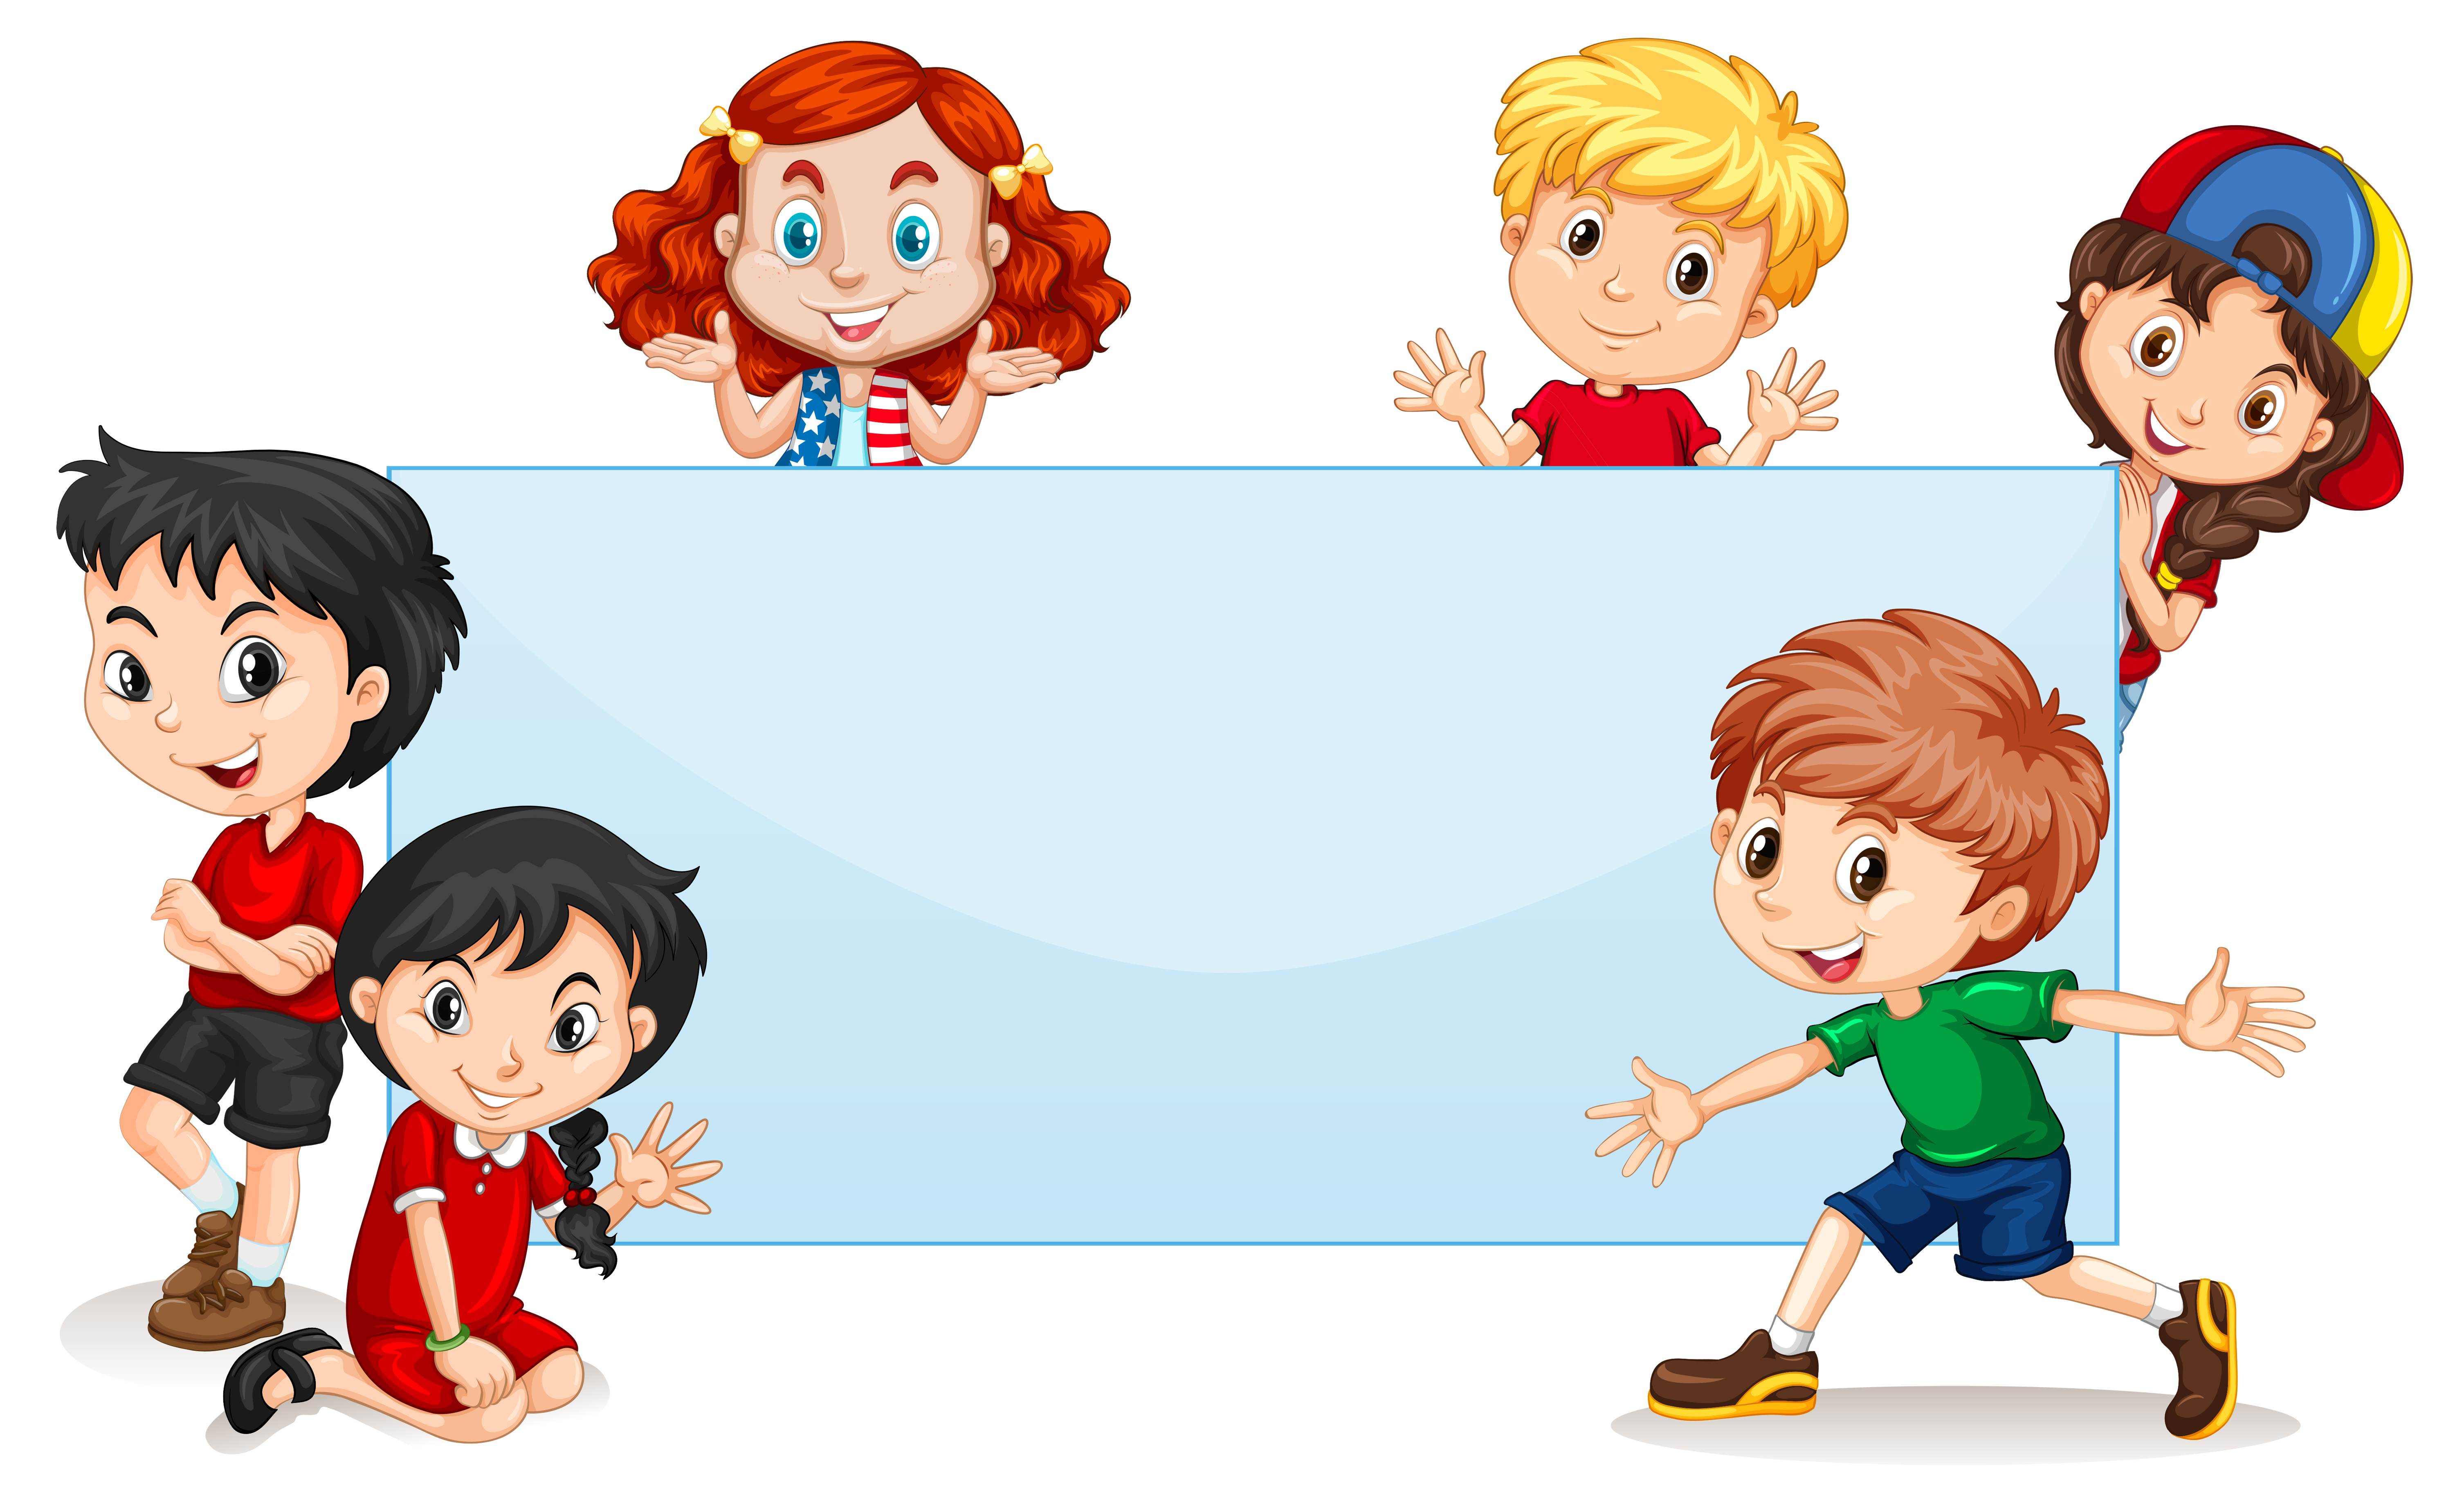 clipart banner blank vector international cartoon kid illustration character illustrations cliparts kins childrens vecteezy related vectors classroom pro